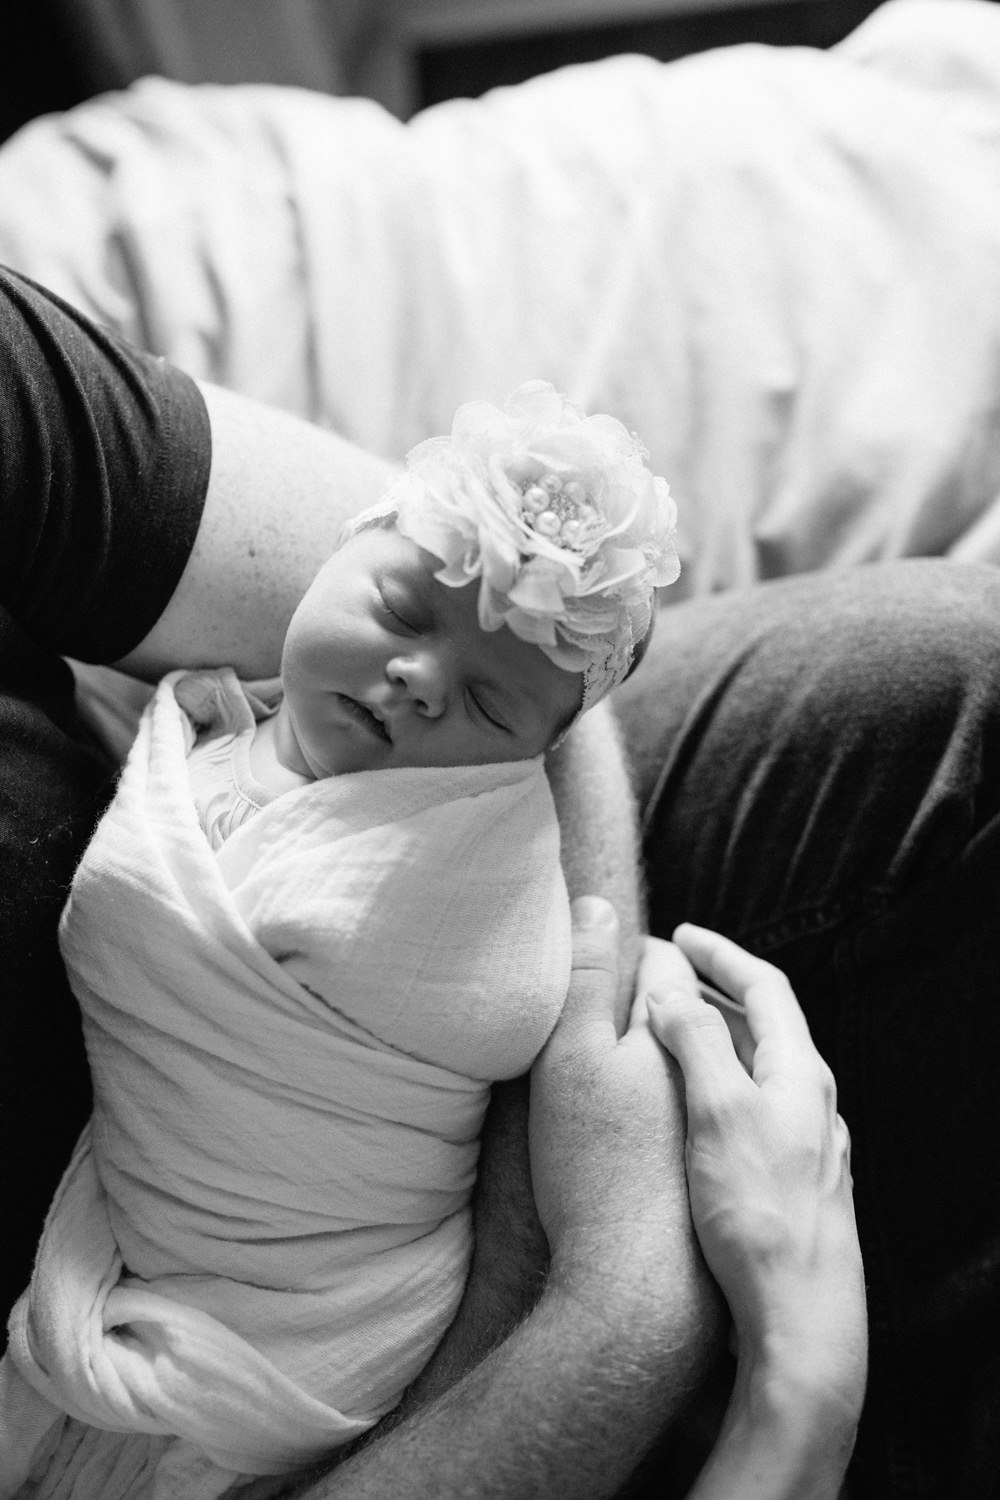 2 week old baby girl with flower headband on lying asleep in white swaddle in father's arms, mom's hand on dad's - Barrie In-Home Photography